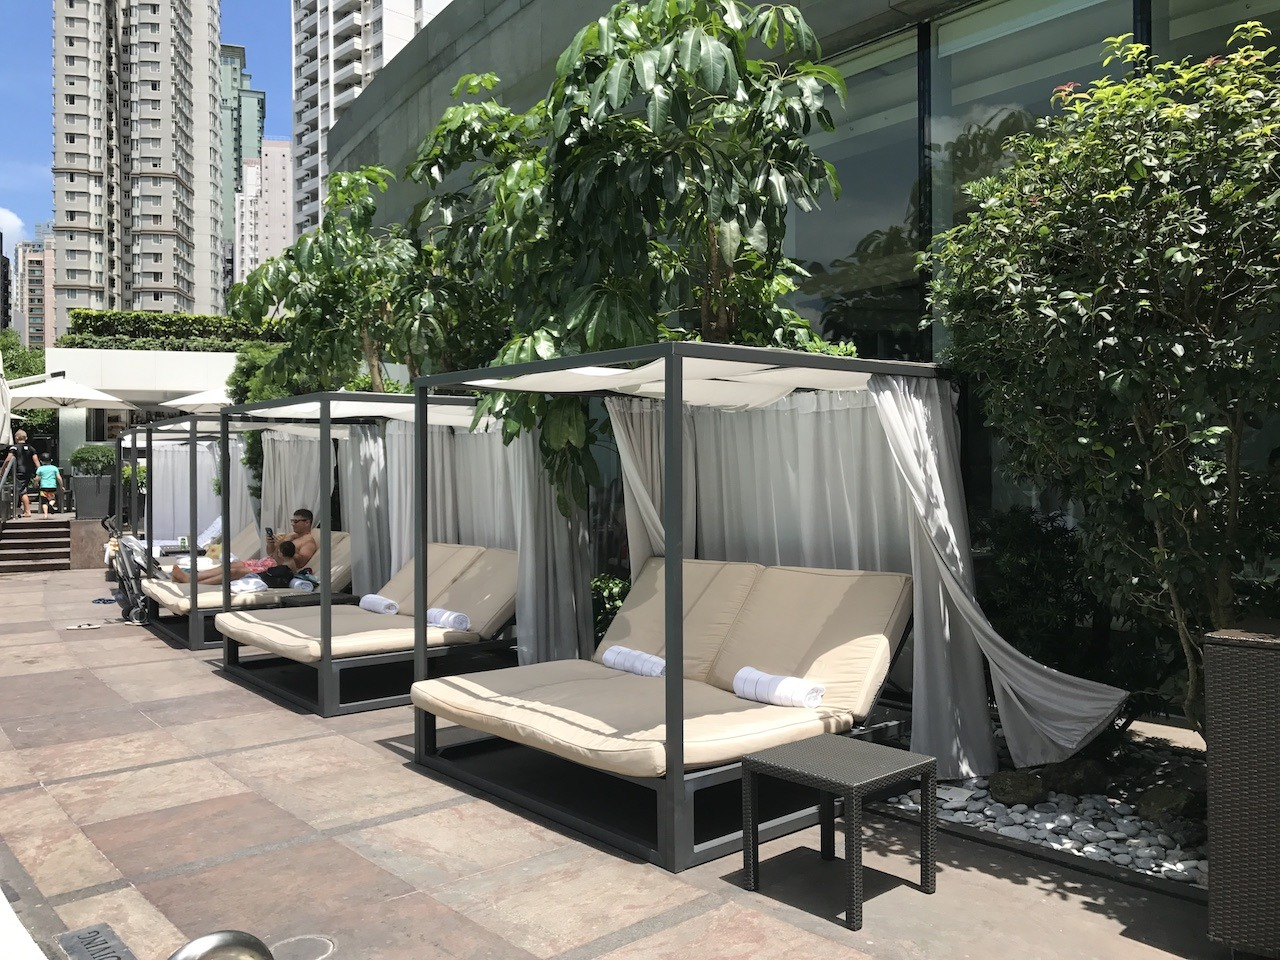 Resort-style loungers